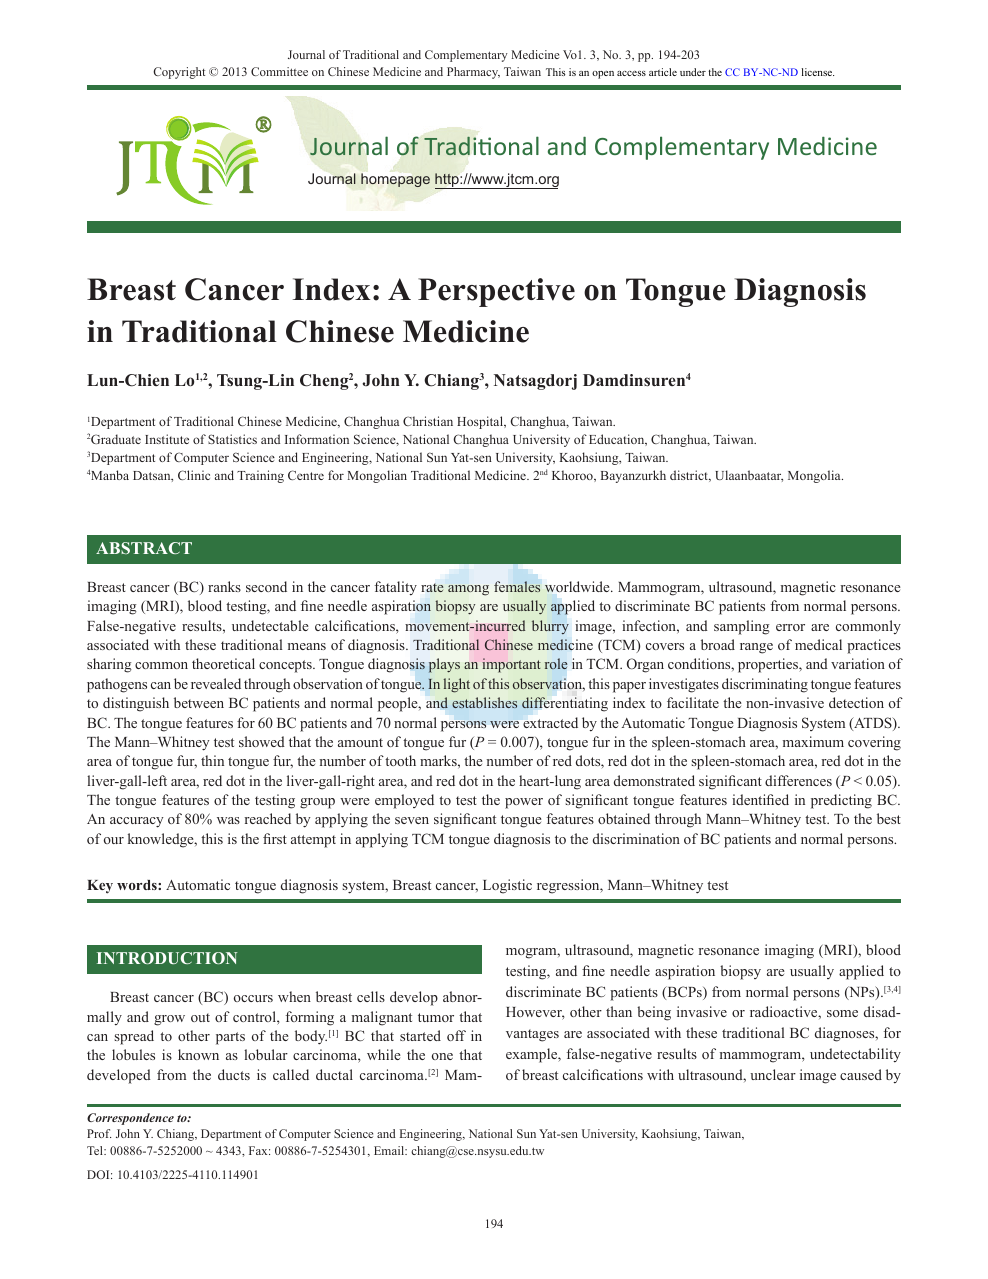 Breast Cancer Index: A Perspective on Tongue Diagnosis in